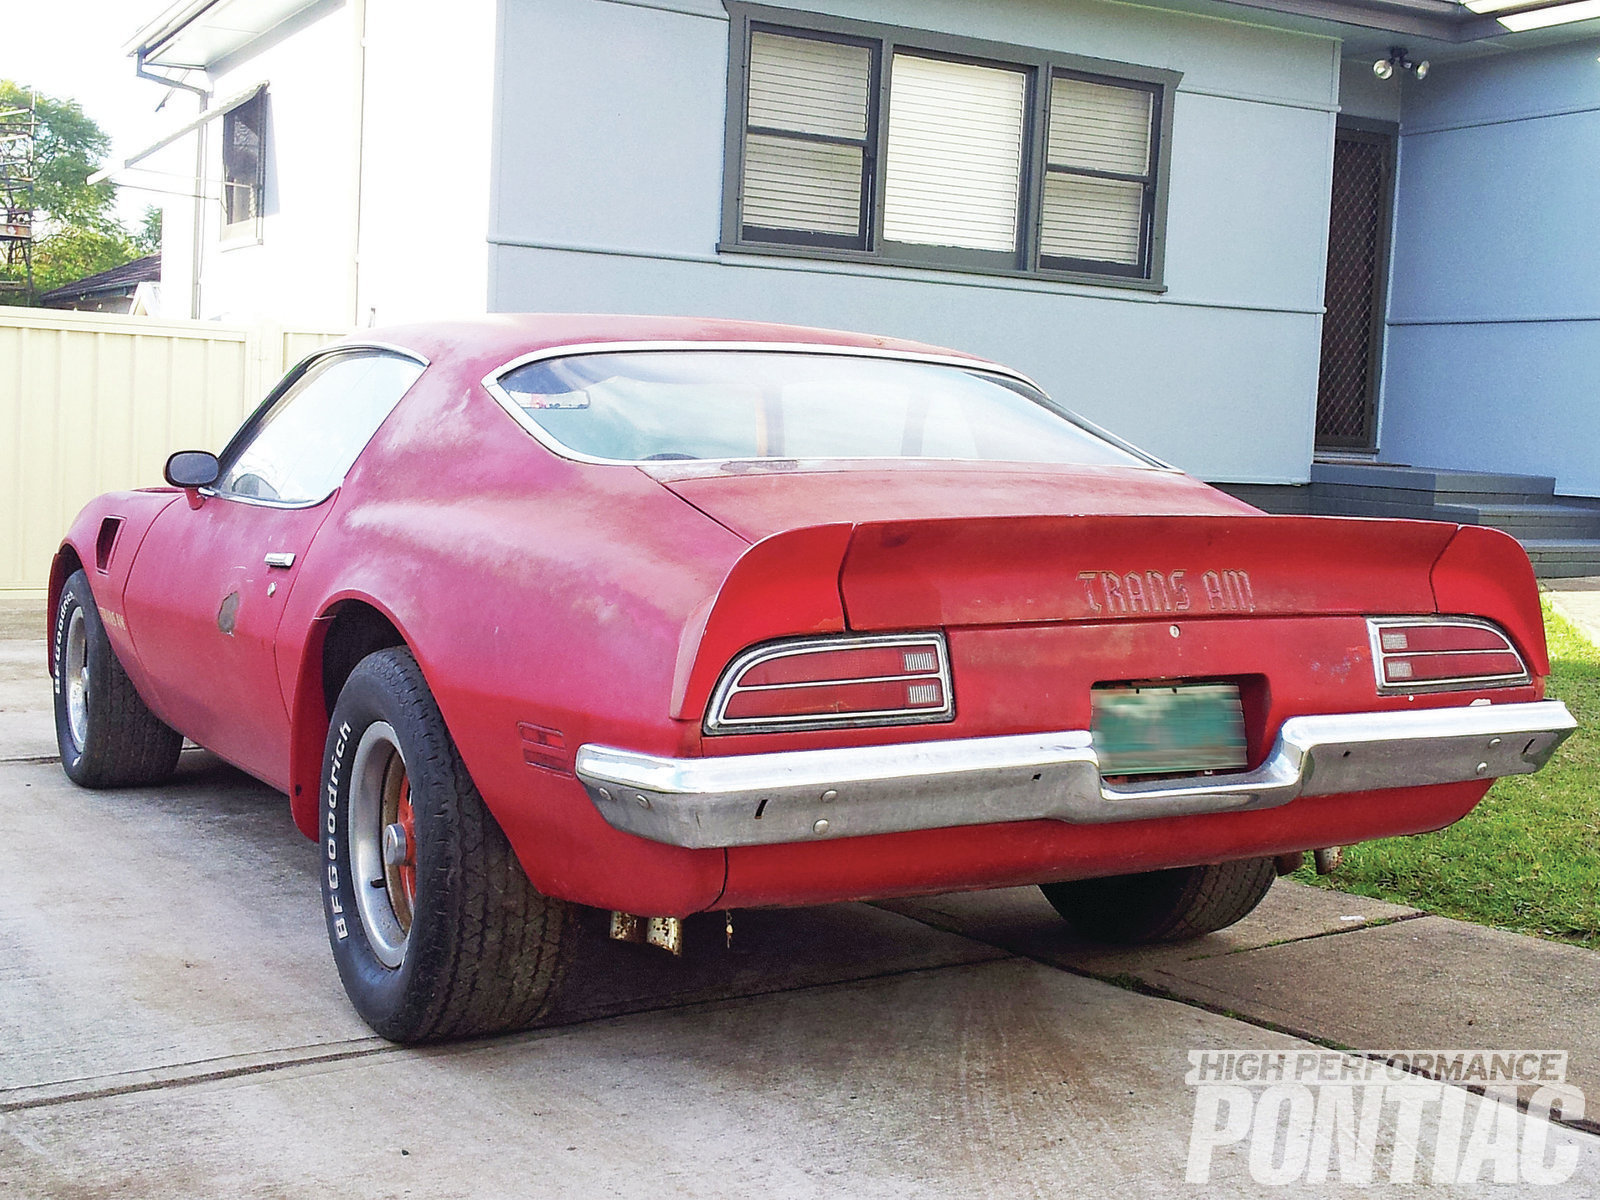 Originally Buccaneer Red, its exterior has been repainted at least once, and the incorrect decals were used in places. For a Firebird that's fast approaching 40 years old, the sheetmetal is remarkably clean. Note the aforementioned holes in the bumper for rear bumper guards.